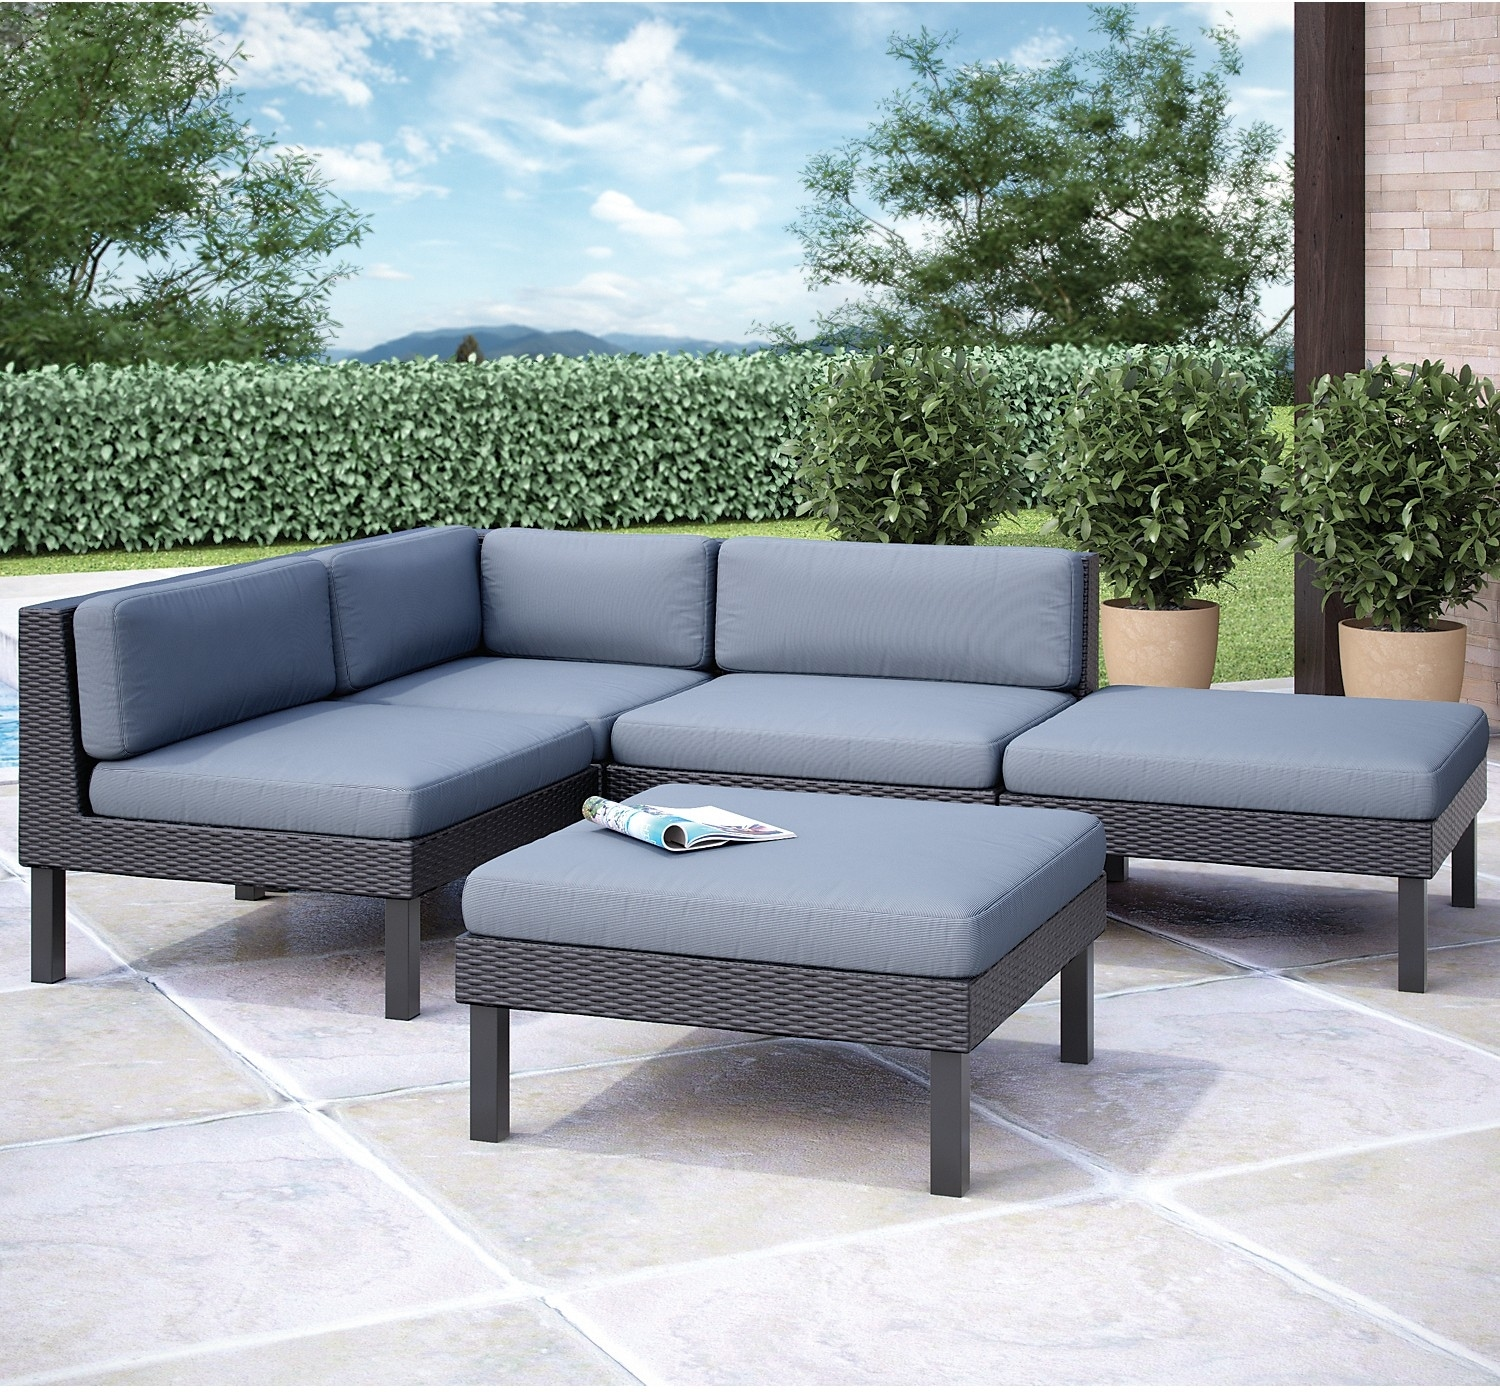 Oakland 5 piece sectional with chaise black united for Black sofa with chaise